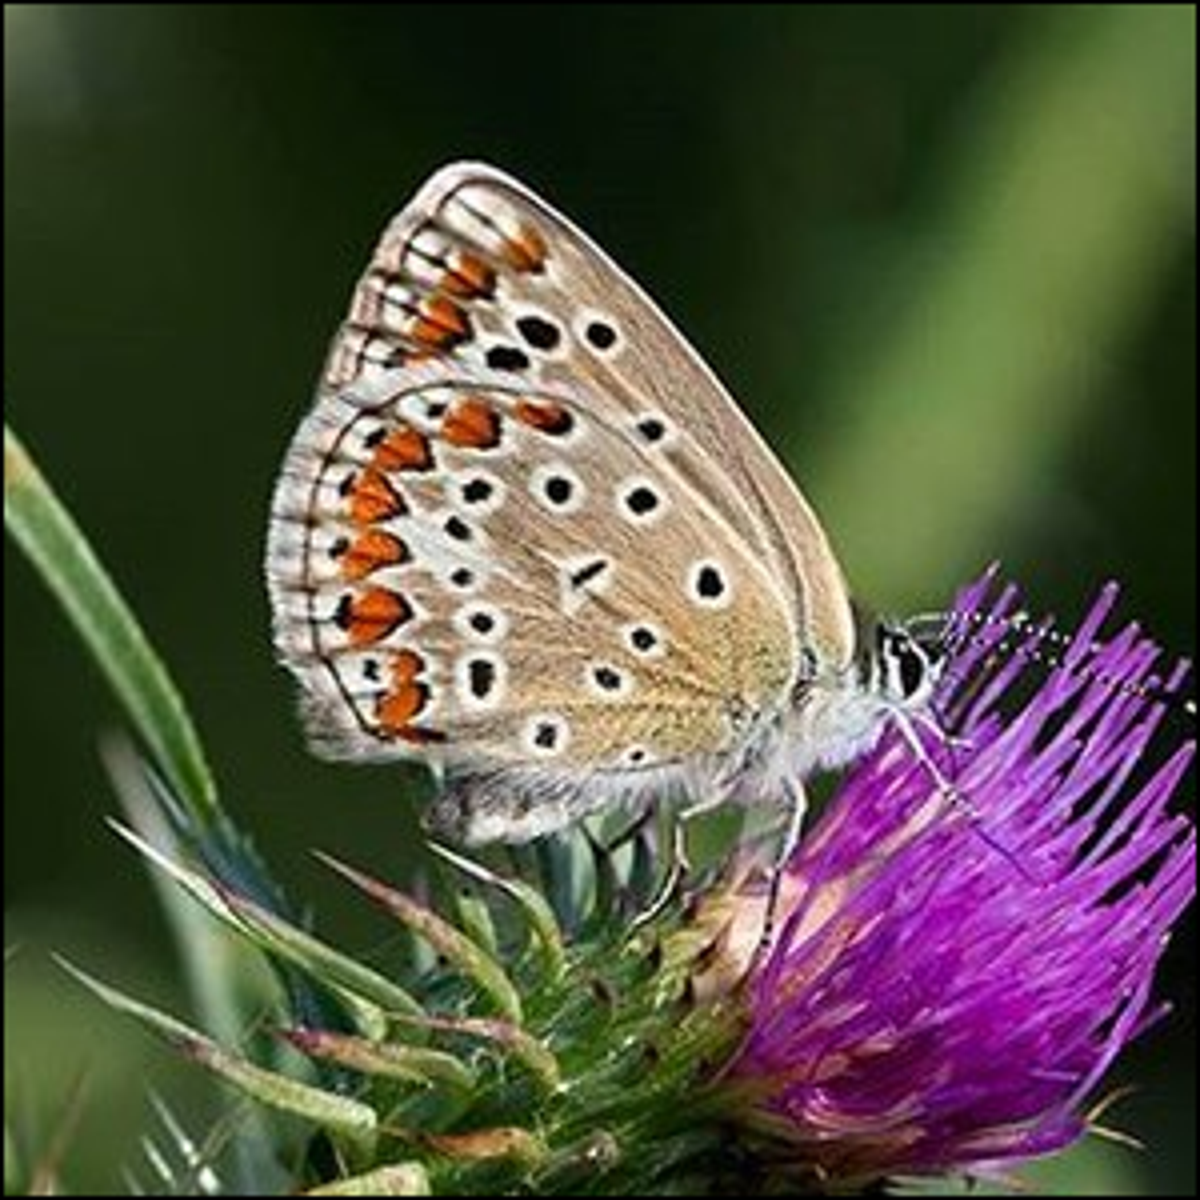 A small butterfly sitting on a green and purple flower.